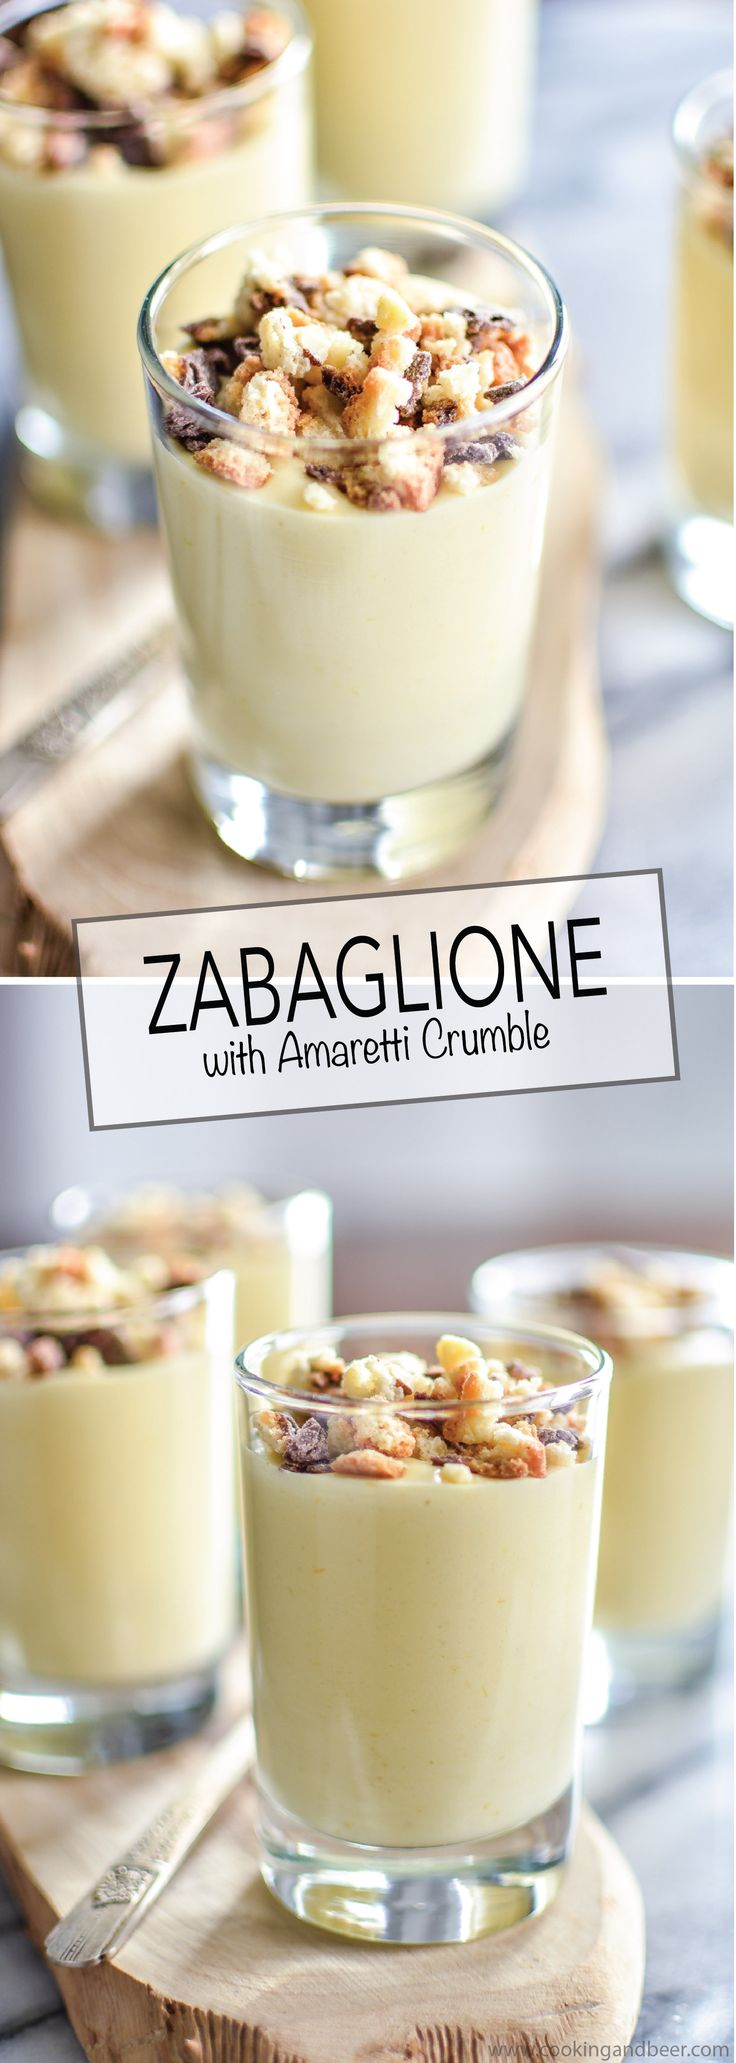 Italian Zabaglione with Biscotti Crumble is a great dessert recipe for a dinner party, as you can make it ahead and it's quick to whip up!   www.cookingandbeer.com